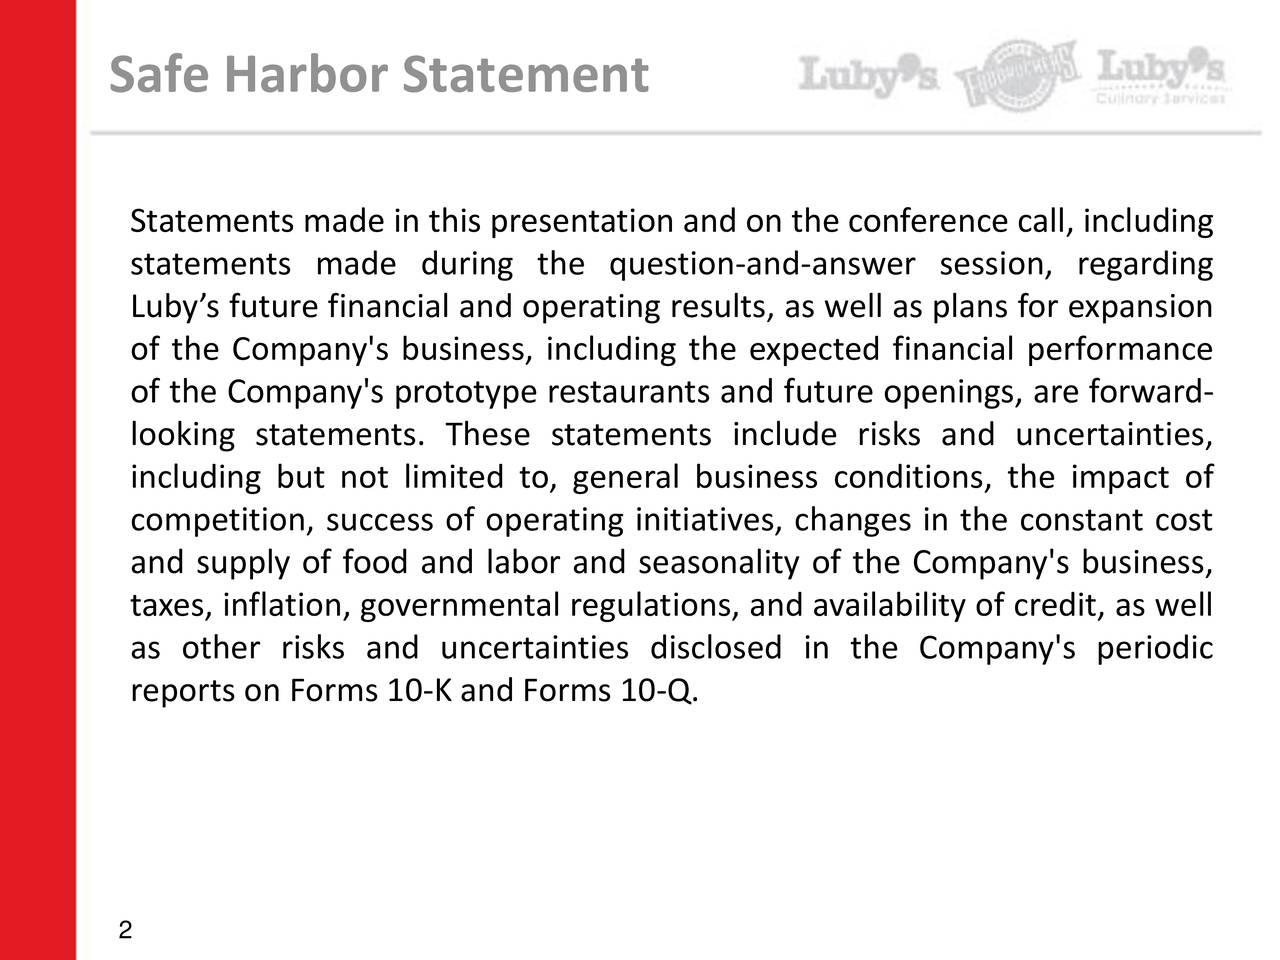 Statements made in this presentation and on the conference call, including statements made during the question-and-answer session, regarding Lubys future financial and operating results, as well as plans for expansion of the Company's business, including the expected financial performance of the Company's prototype restaurants and future openings, are forward- looking statements. These statements include risks and uncertainties, including but not limited to, general business conditions, the impact of competition, success of operating initiatives, changes in the constant cost and supply of food and labor and seasonality of the Company's business, taxes, inflation, governmental regulations, and availability of credit, as well as other risks and uncertainties disclosed in the Company's periodic reports on Forms 10-K and Forms 10-Q. 2